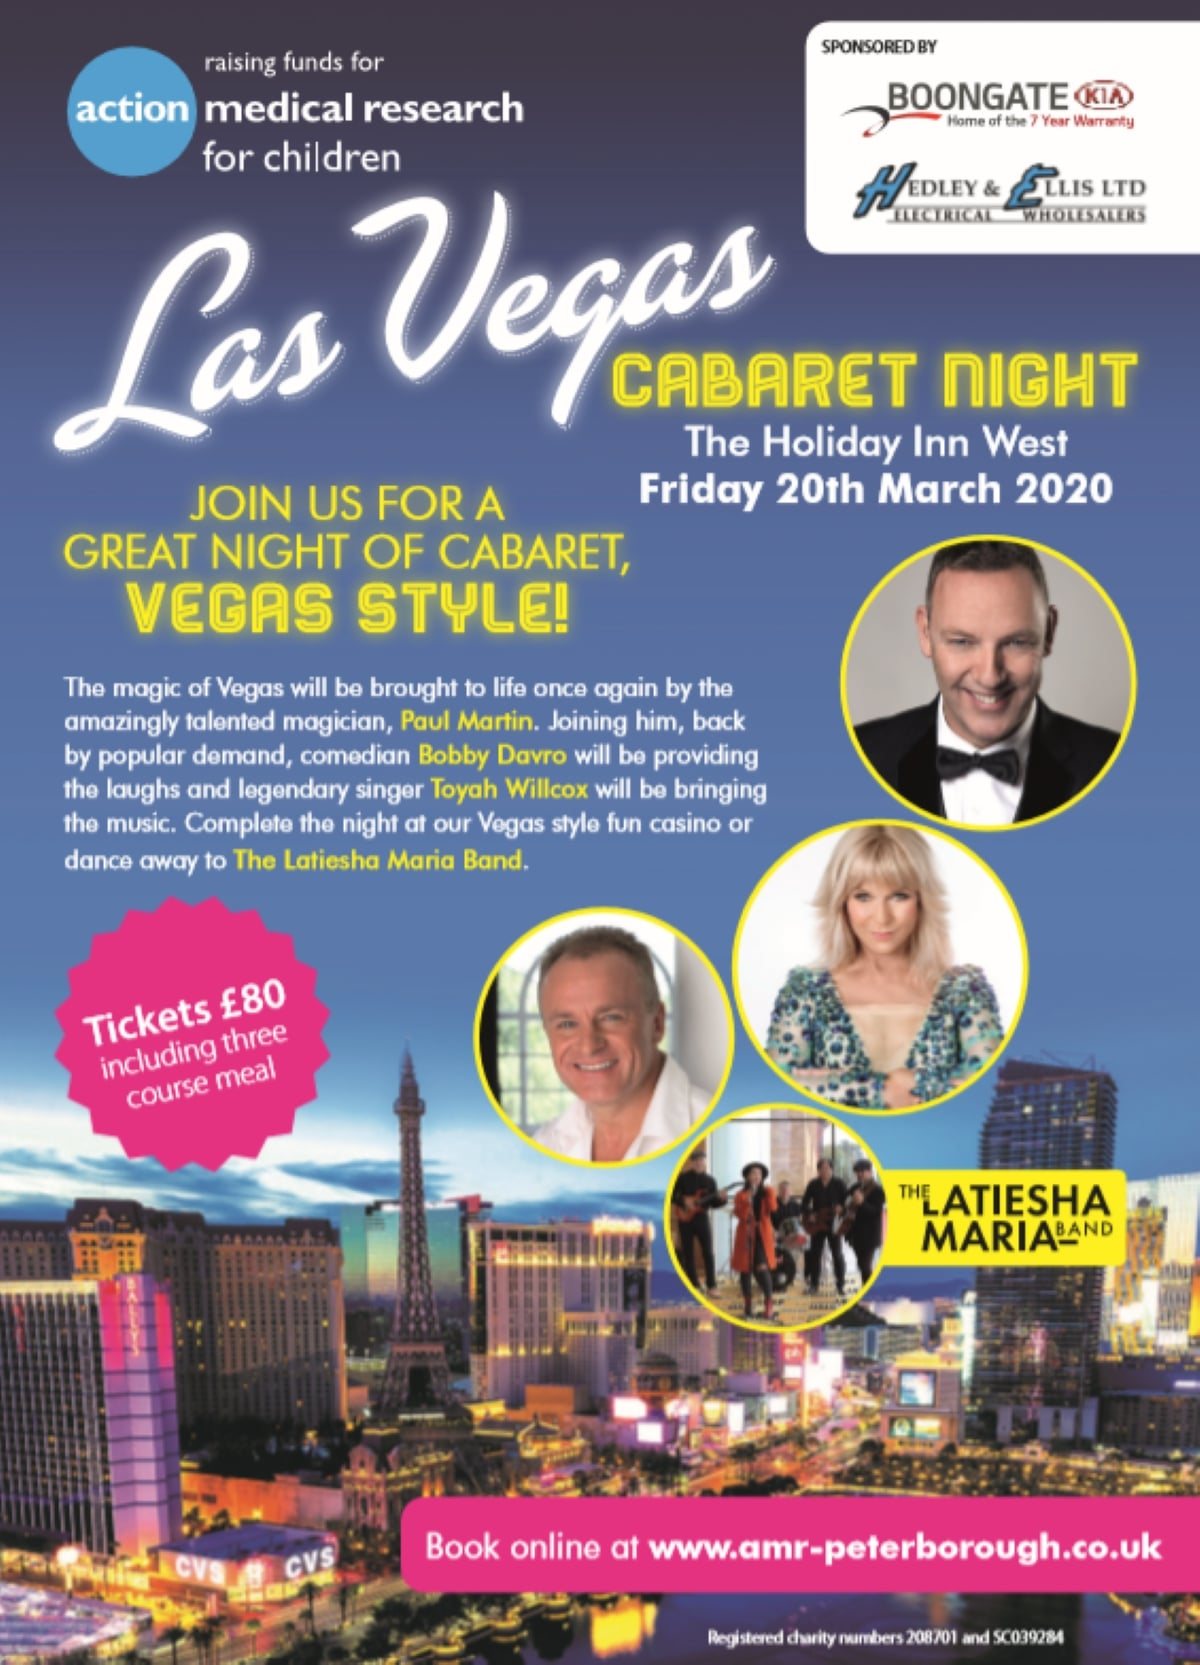 Children's Charity Brings the Vegas Strip to Peterborough